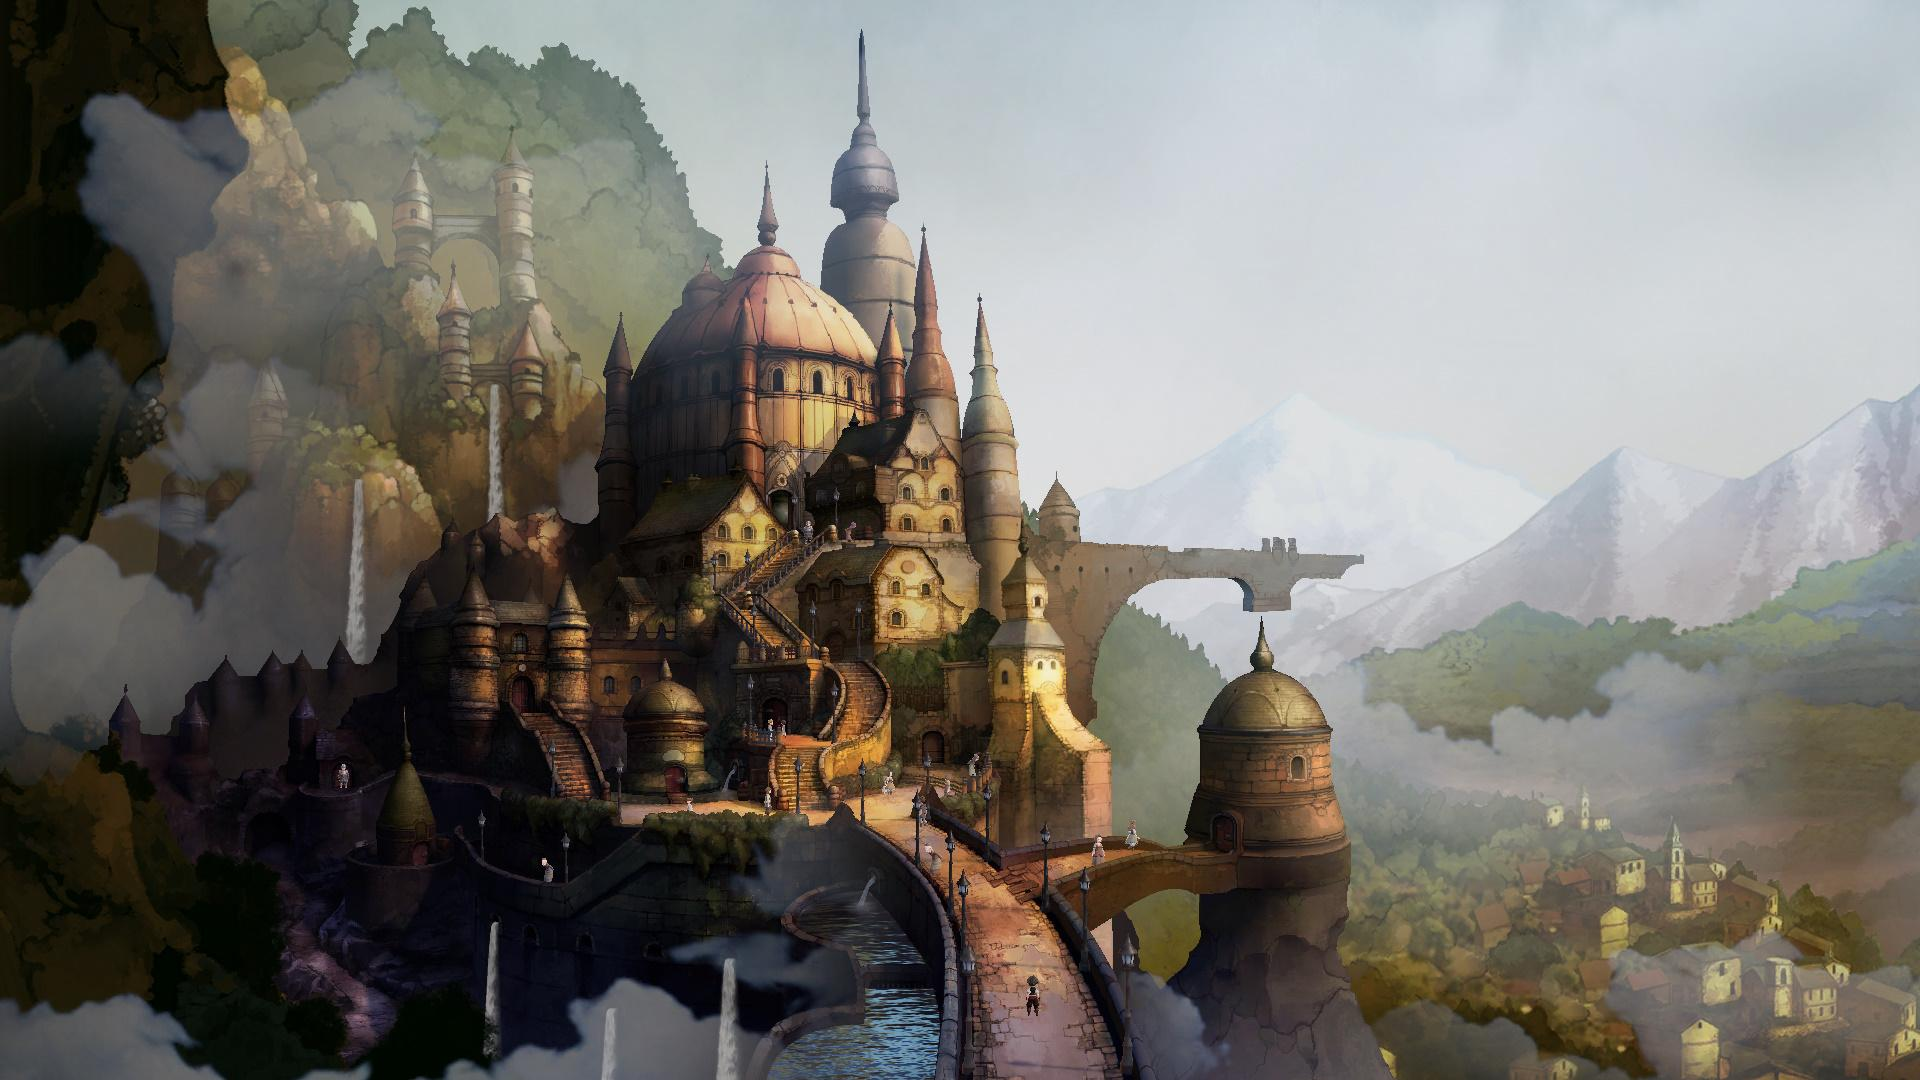 Screenshot Of A City From Bravely Default II